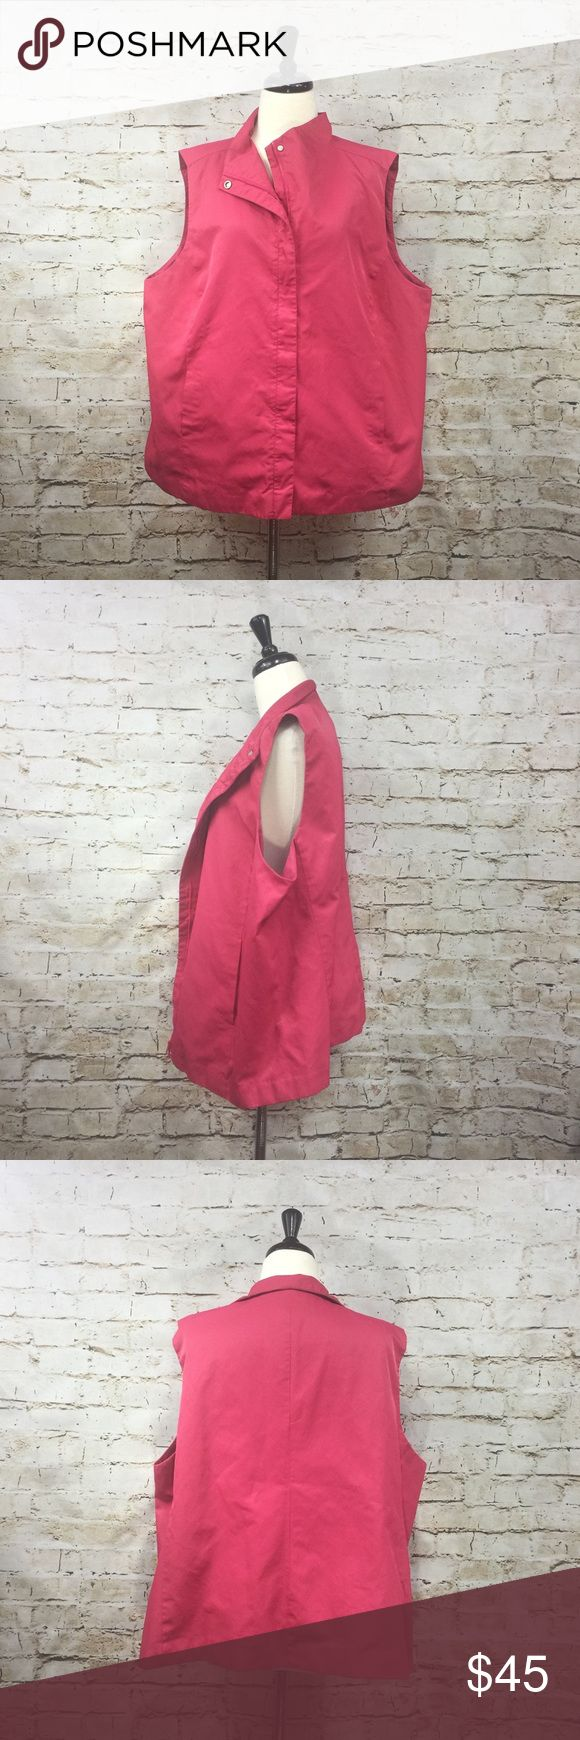 """Eileen Fisher Pink Vest with Zip Closure- Size 2X Eileen Fisher Pink Vest with Zip Closure- Size 2X. Beautiful bright color. Zip closure and one snap button by collar. Fully lined. Two hidden pockets. High collar. Dry clean only. Material: 52% cotton, 48% nylon; lining: 64% cotton, 36% nylon.  Approximate measurements (measured flat): bust: 25.5"""", length: 26.5"""". Excellent used condition. No signs of wear. Eileen Fisher Jackets & Coats Vests"""